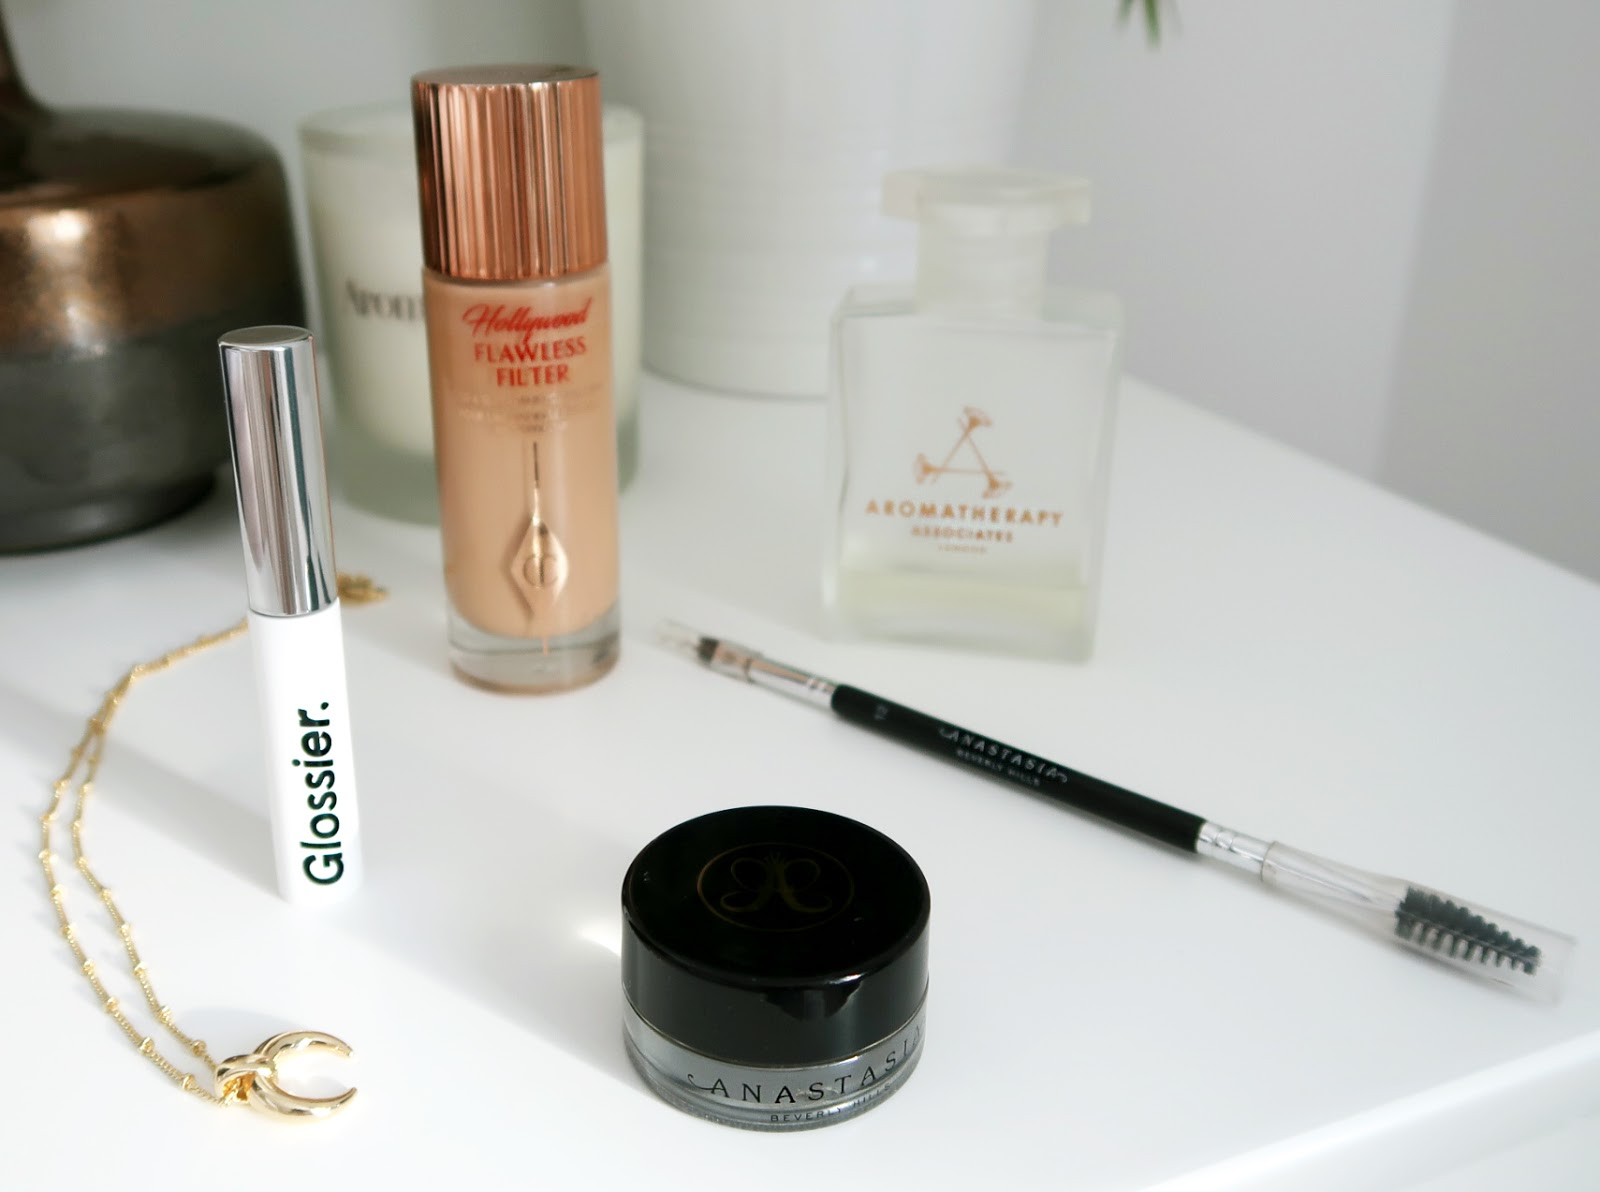 Best discoveries of 2018 you need to try, Best of beauty, Charlotte Tilbury Hollywood Flawless Filter review, Glossier Boy Brow Review, Anastasia Beverly Hills DipBrow Pomade and Brush 12 reviews, Aromatherapy Associates De-stress Mind Bath & Shower Oil Review